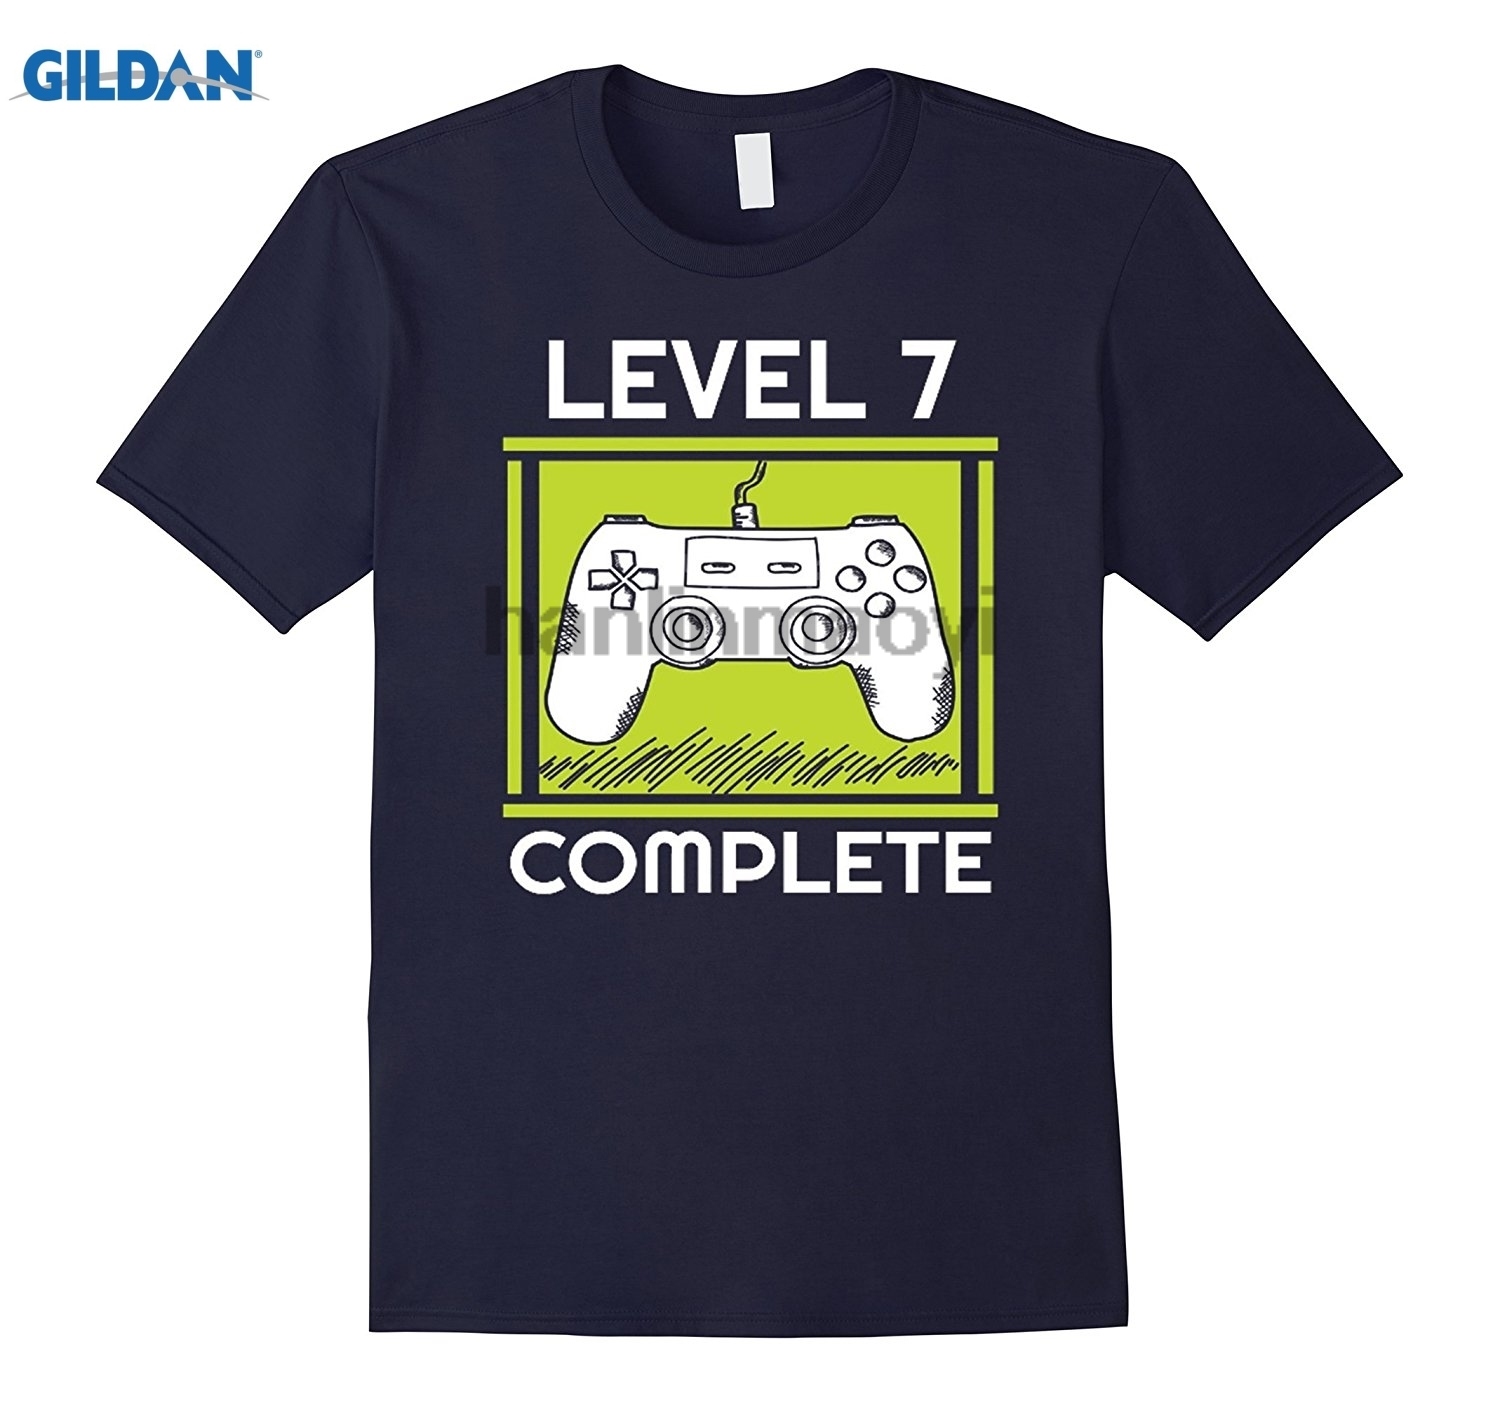 GILDAN Kids Level 7 Complete Funny Video Games 7th Birthday Gift T- ...